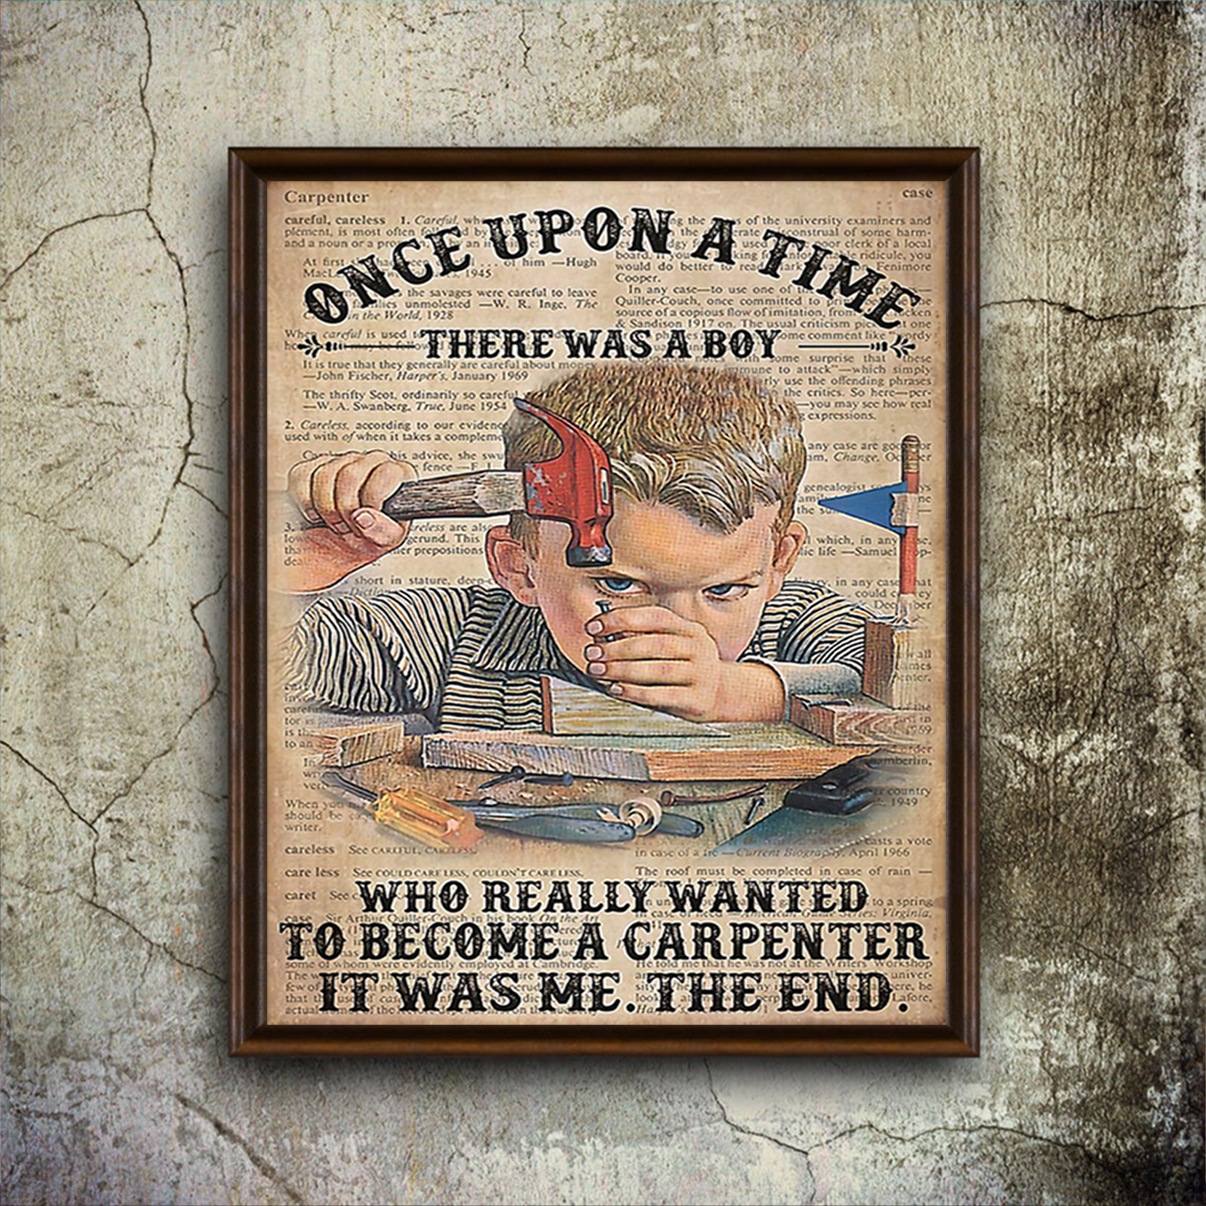 Once upon a time there was a boy who really wanted to become a carpenter poster A3